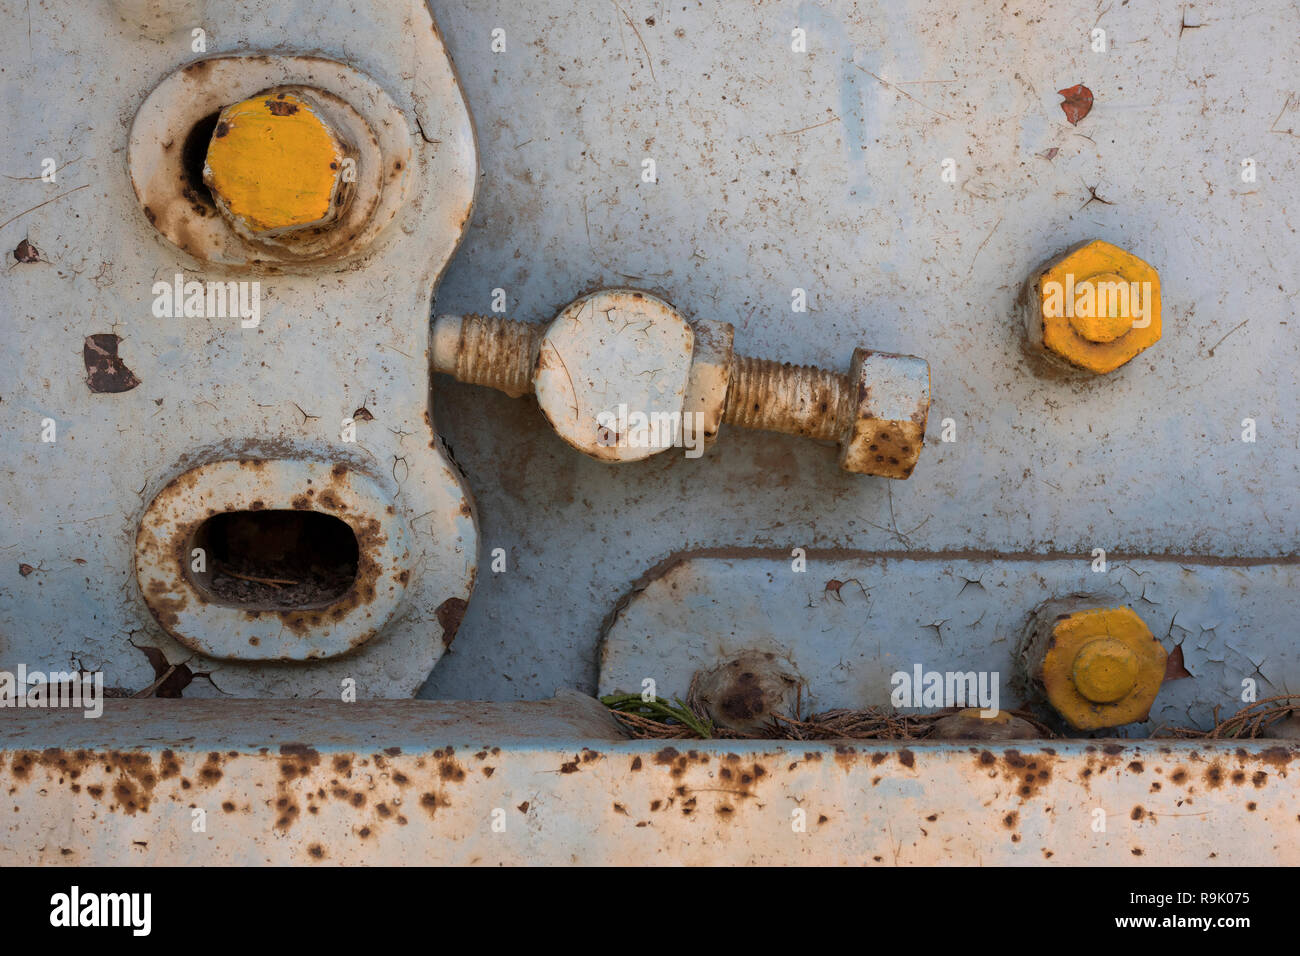 Old rusty screws on a neglected panel - Stock Image